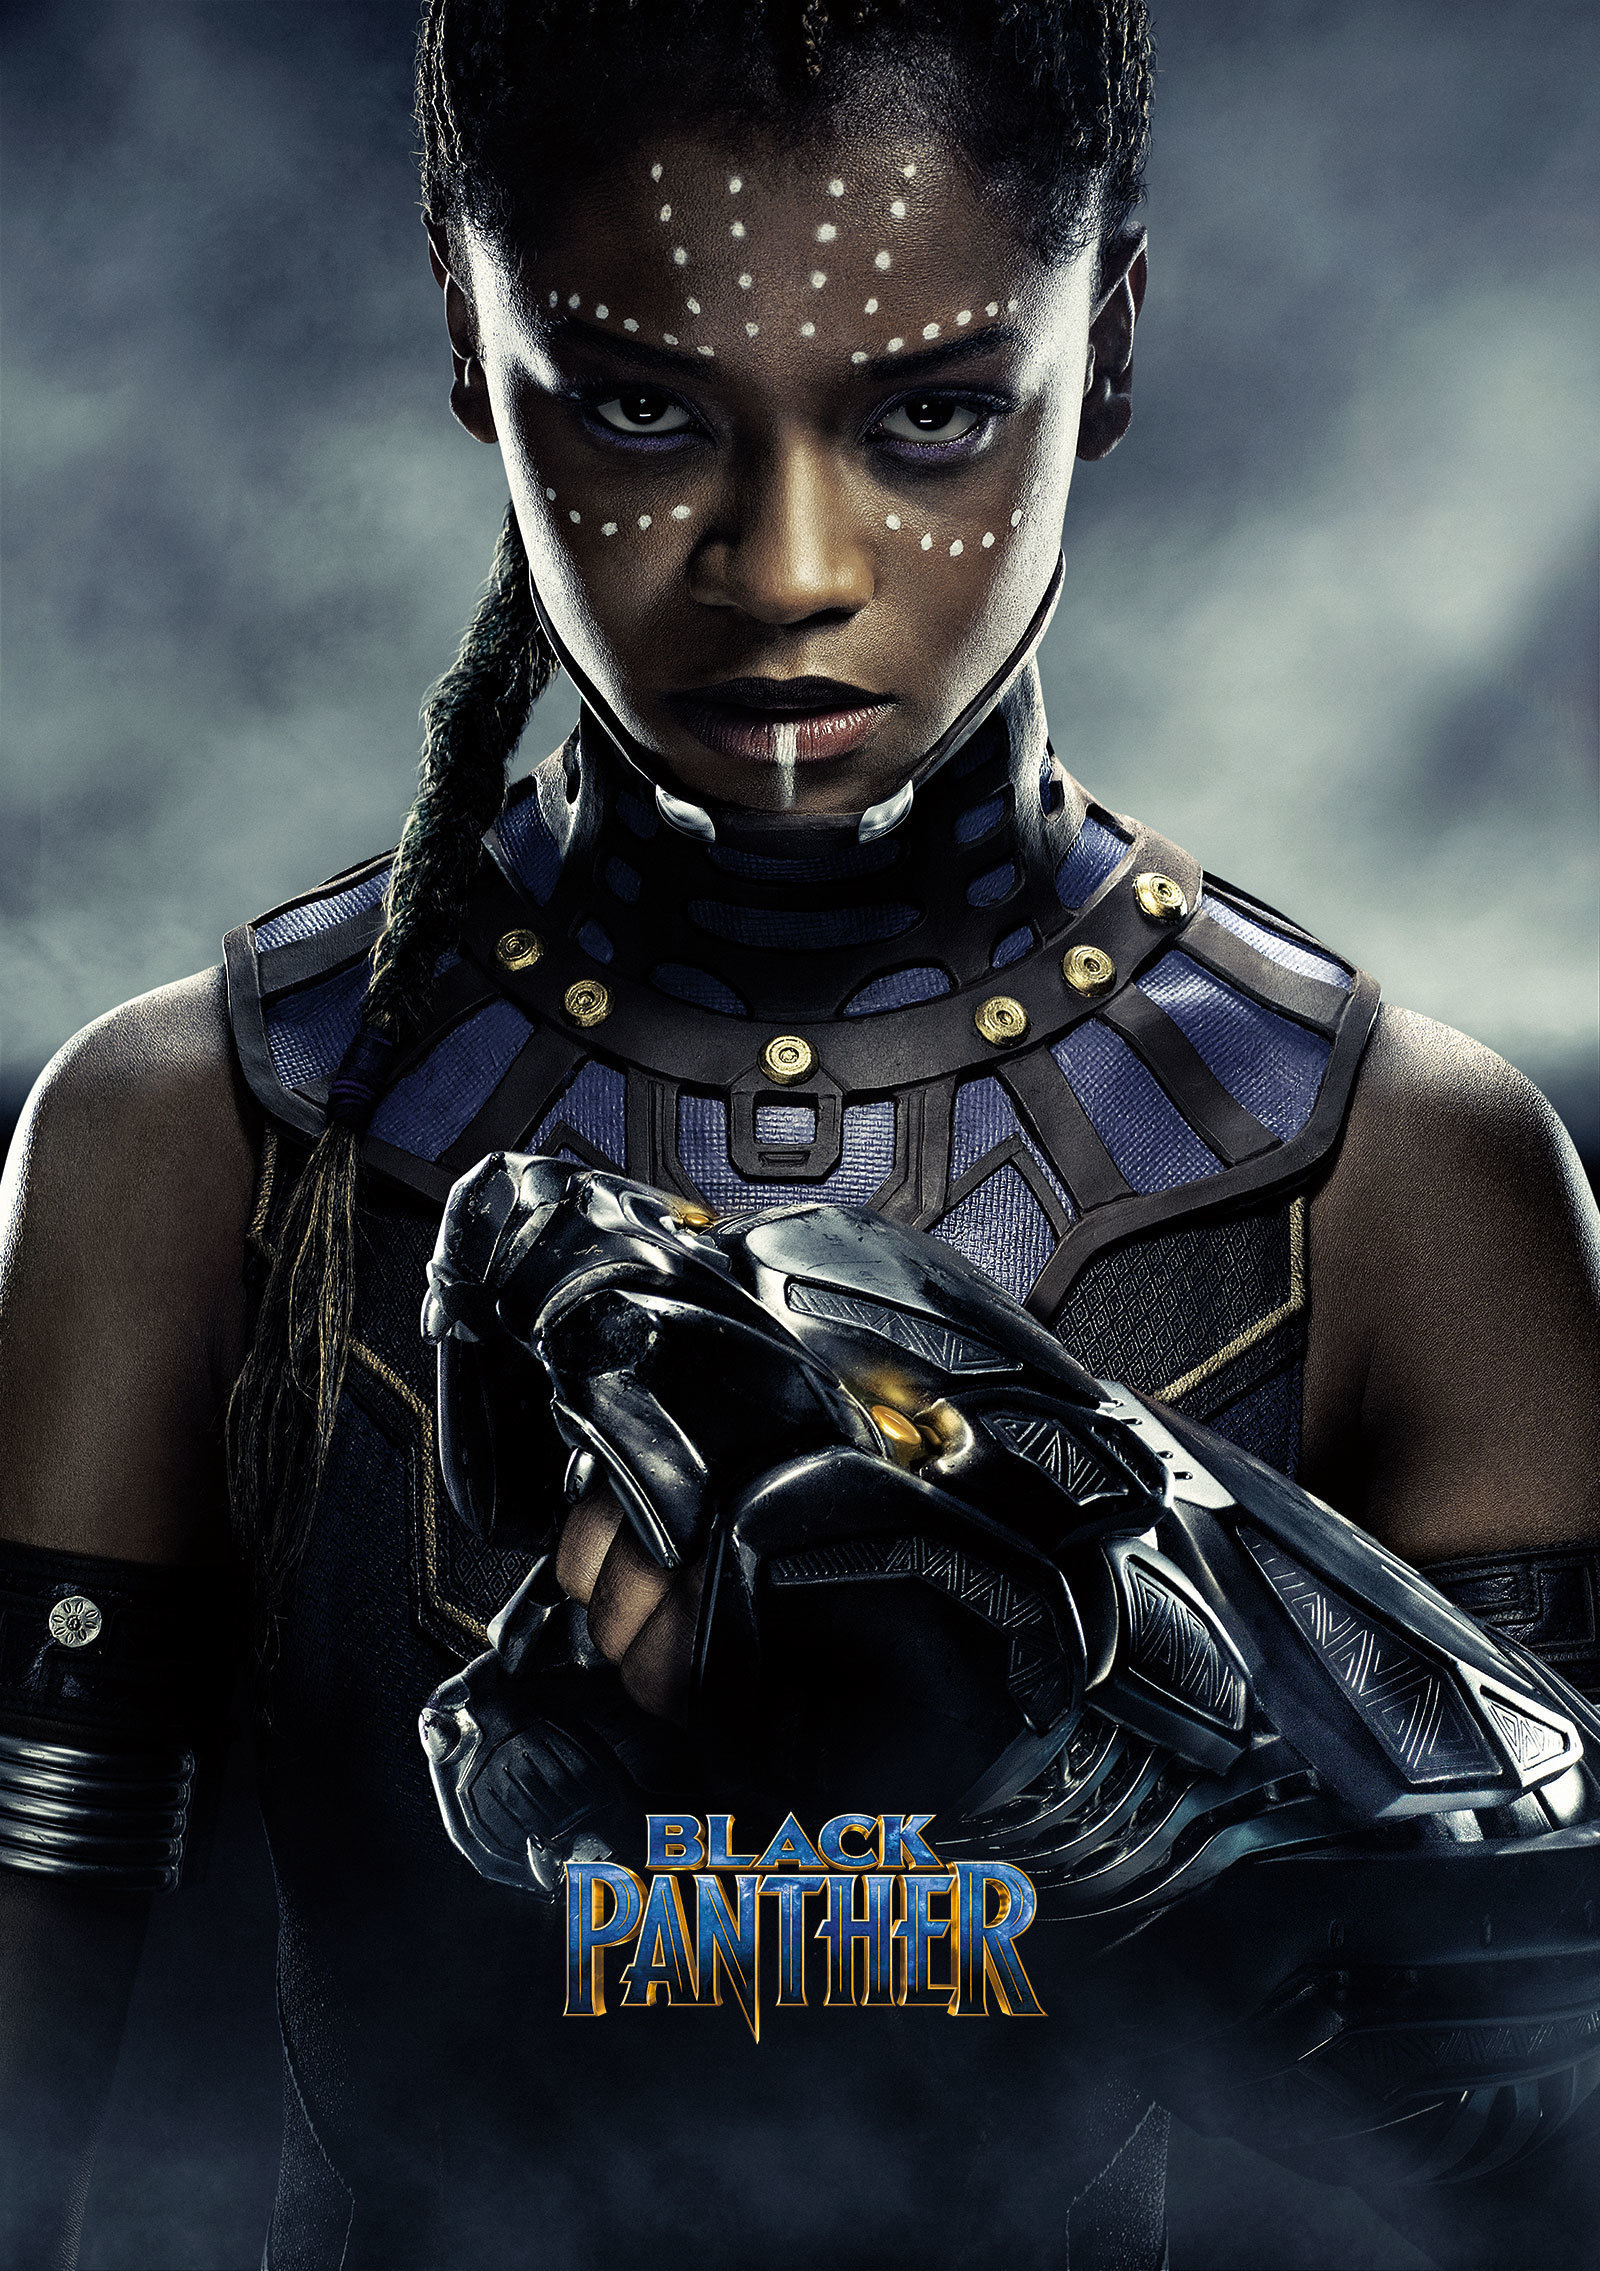 Black Panther - Characters - SHURI